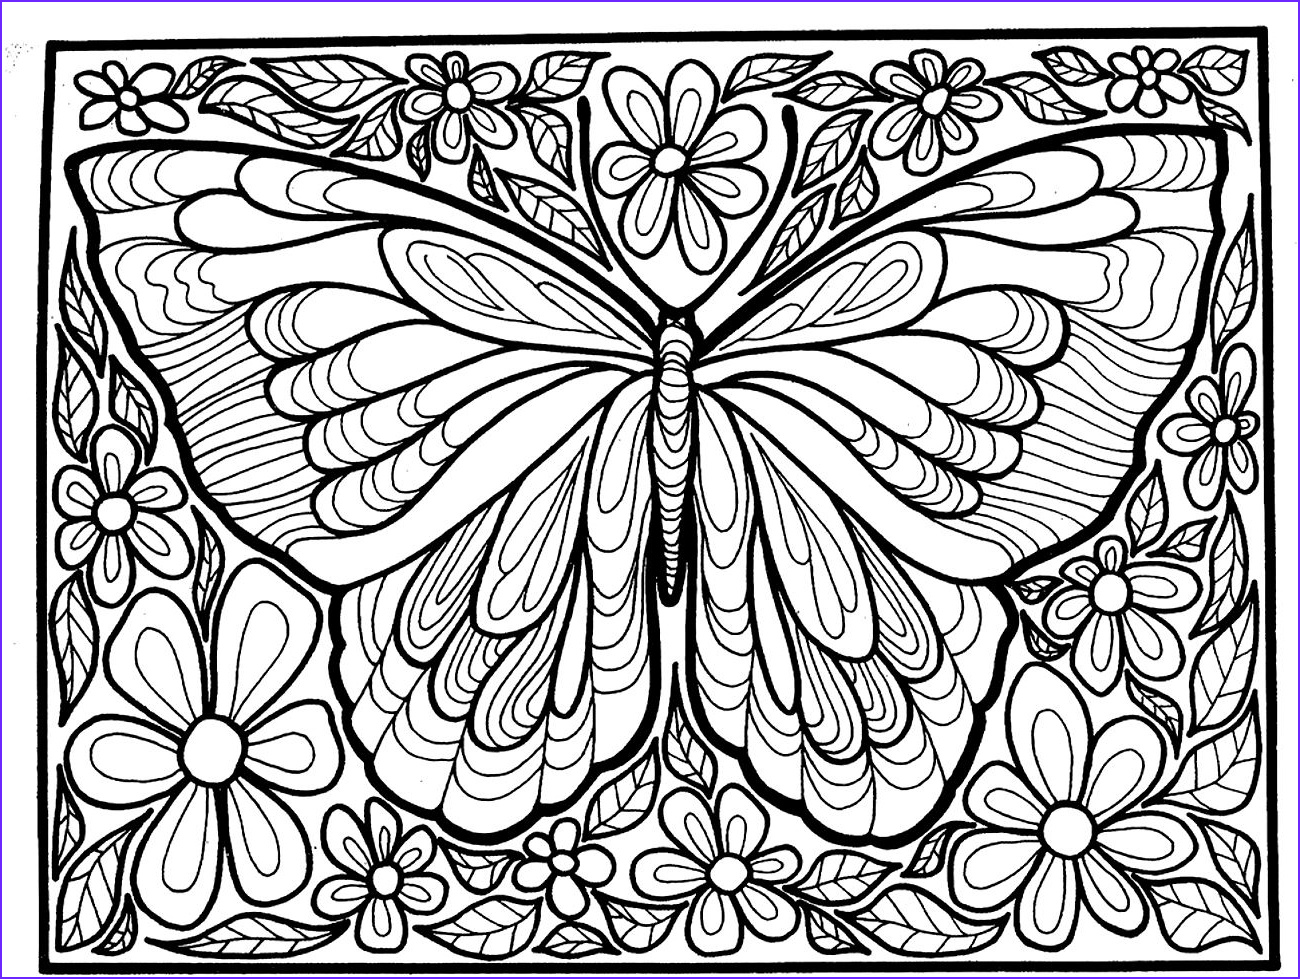 image=insectes coloring adult difficult big butterfly 1